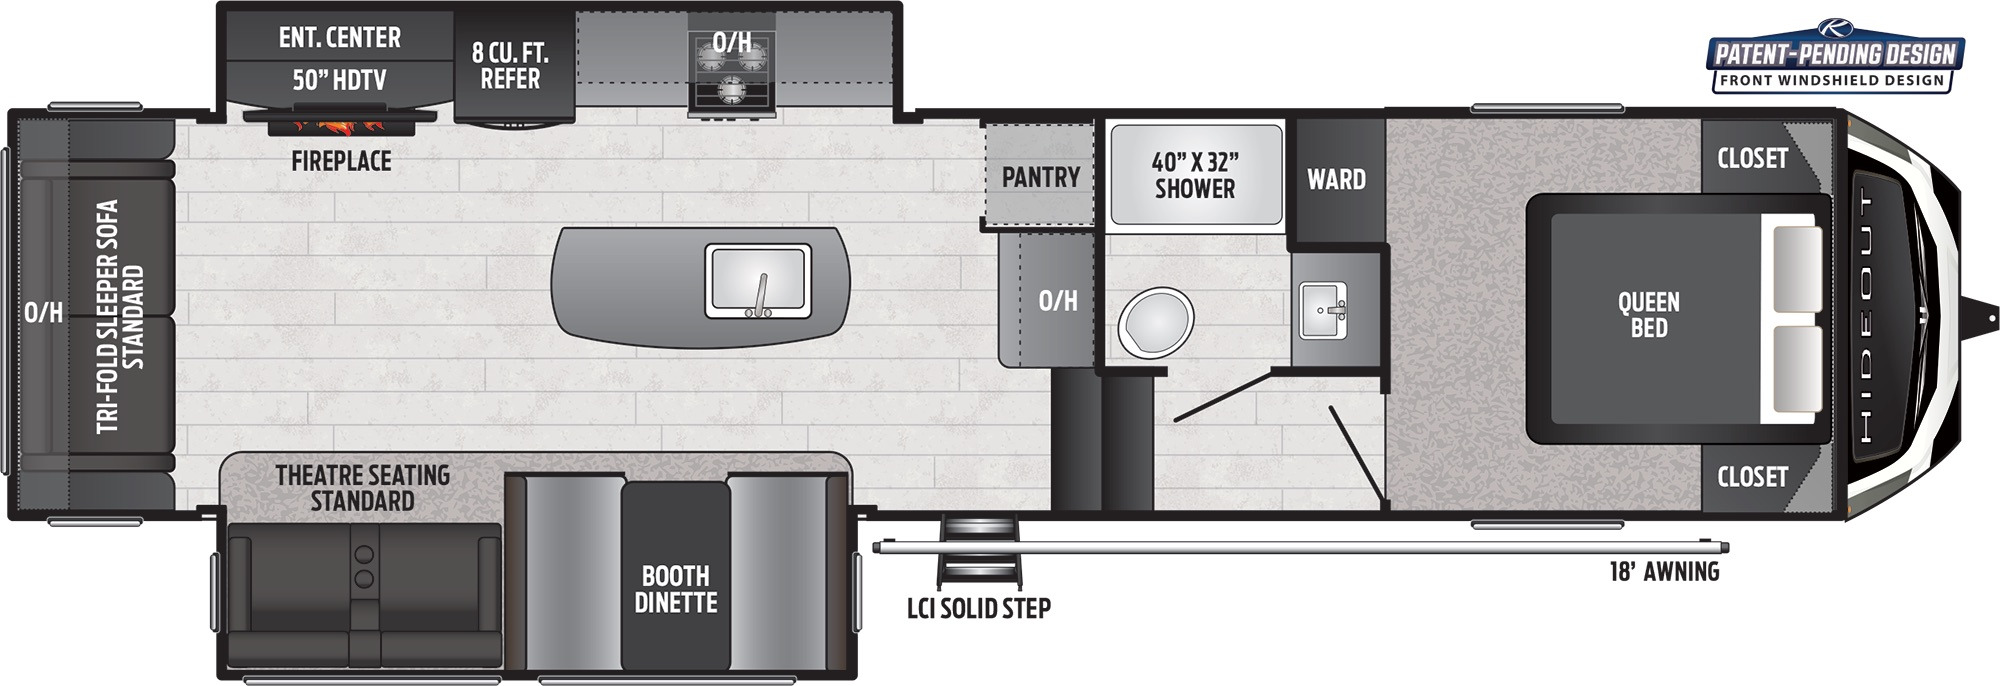 View Floor Plan for 2021 KEYSTONE HIDEOUT 300RLDS